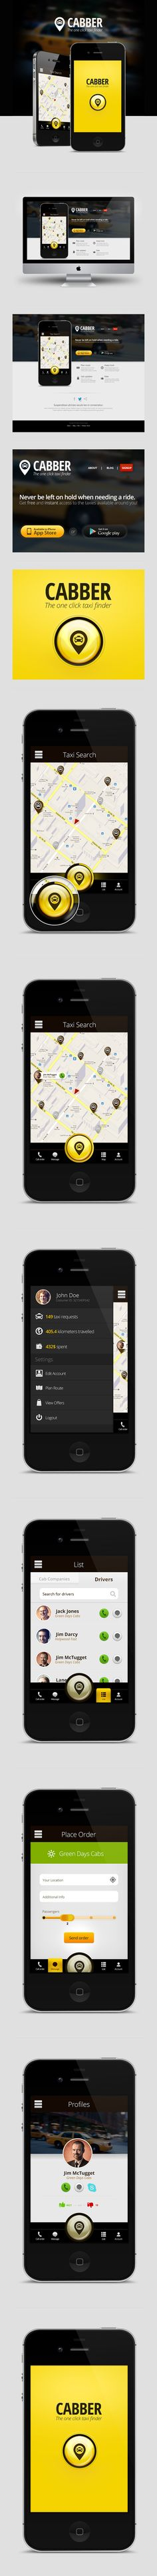 Cabber App by Ursuleanu Daniel, via Behance